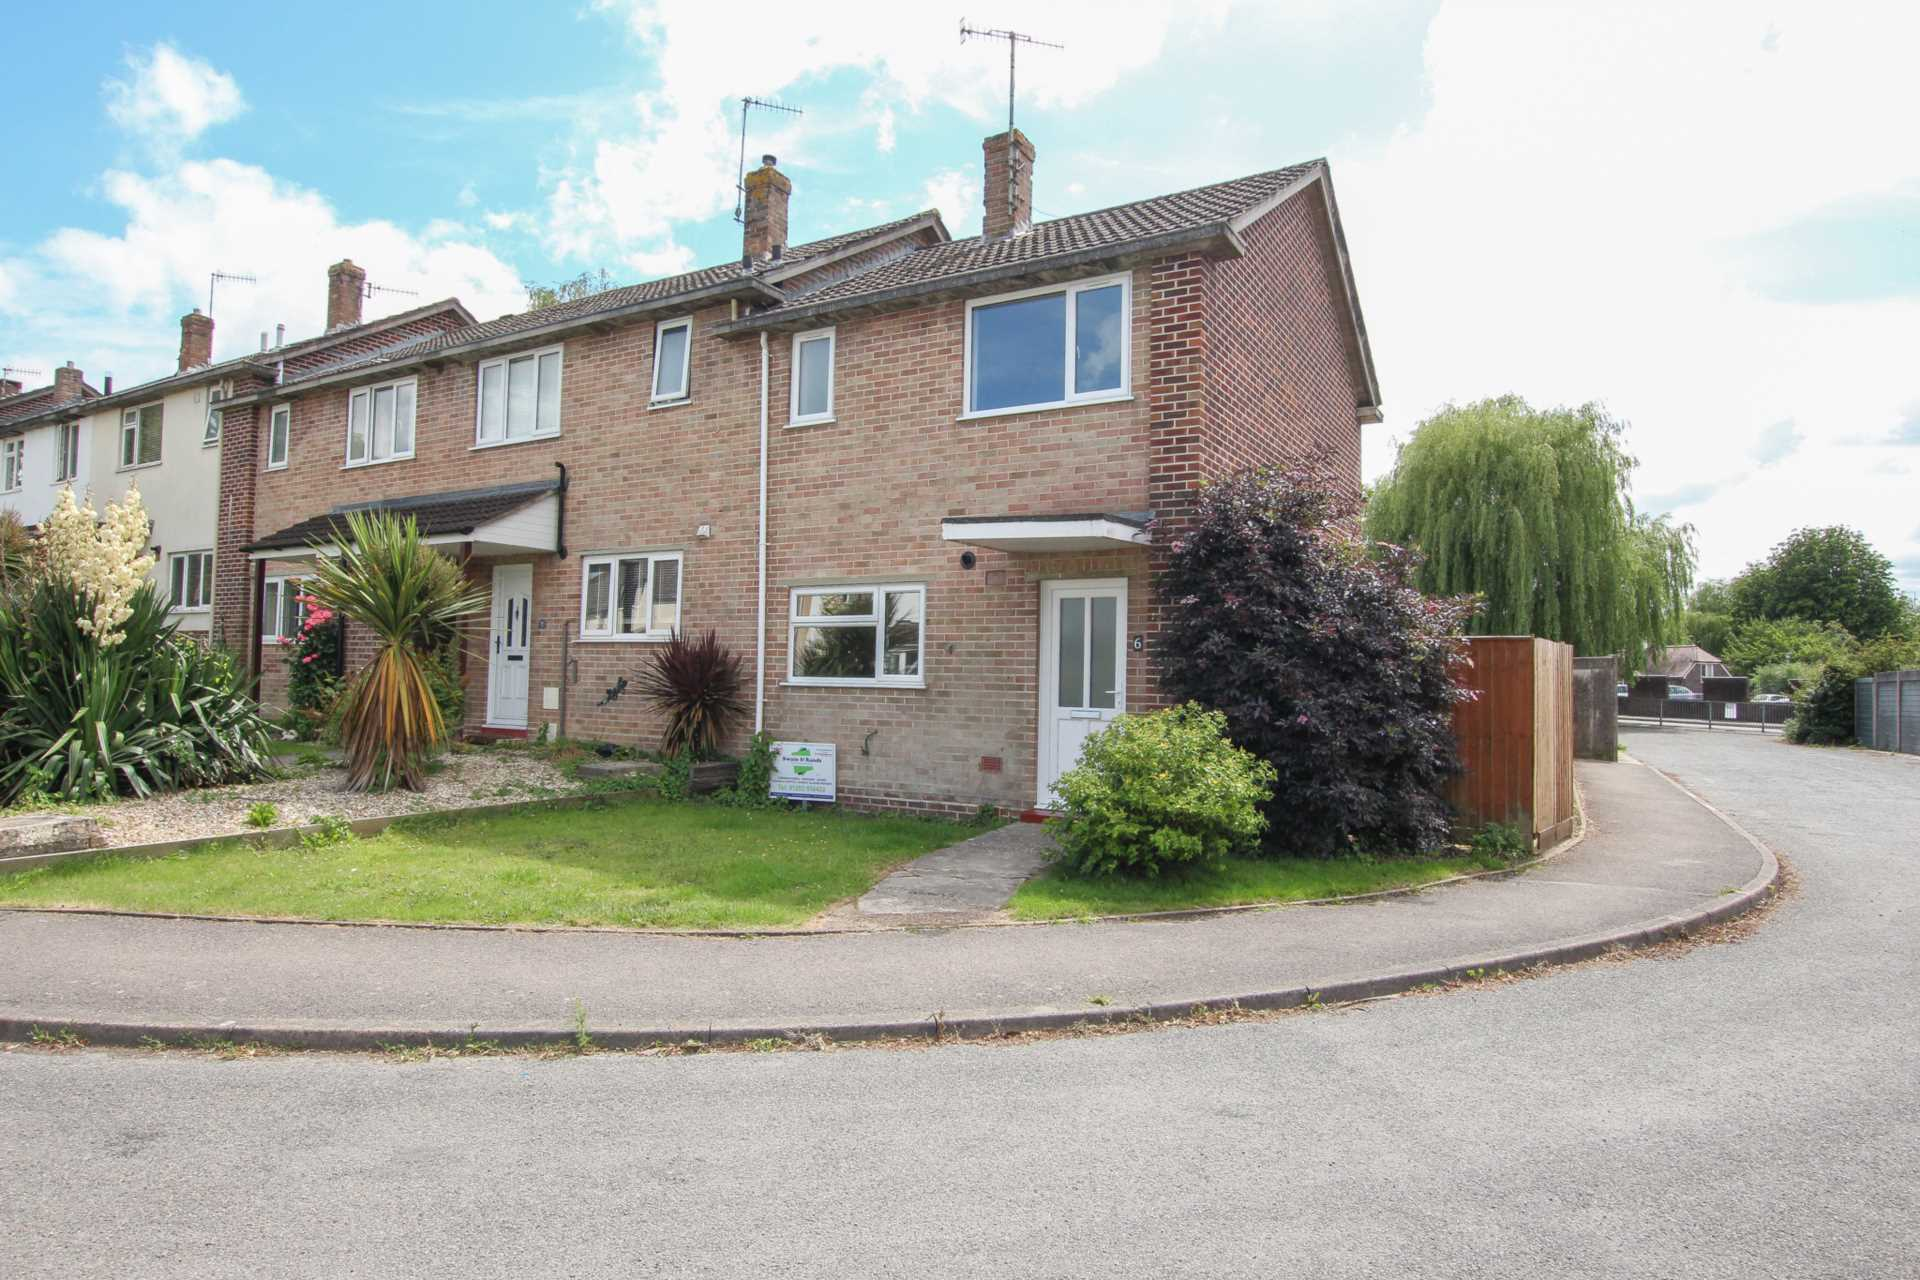 2 bed end of terrace house to rent in Fishers Close, Blandford Forum, Blandford Forum  - Property Image 1